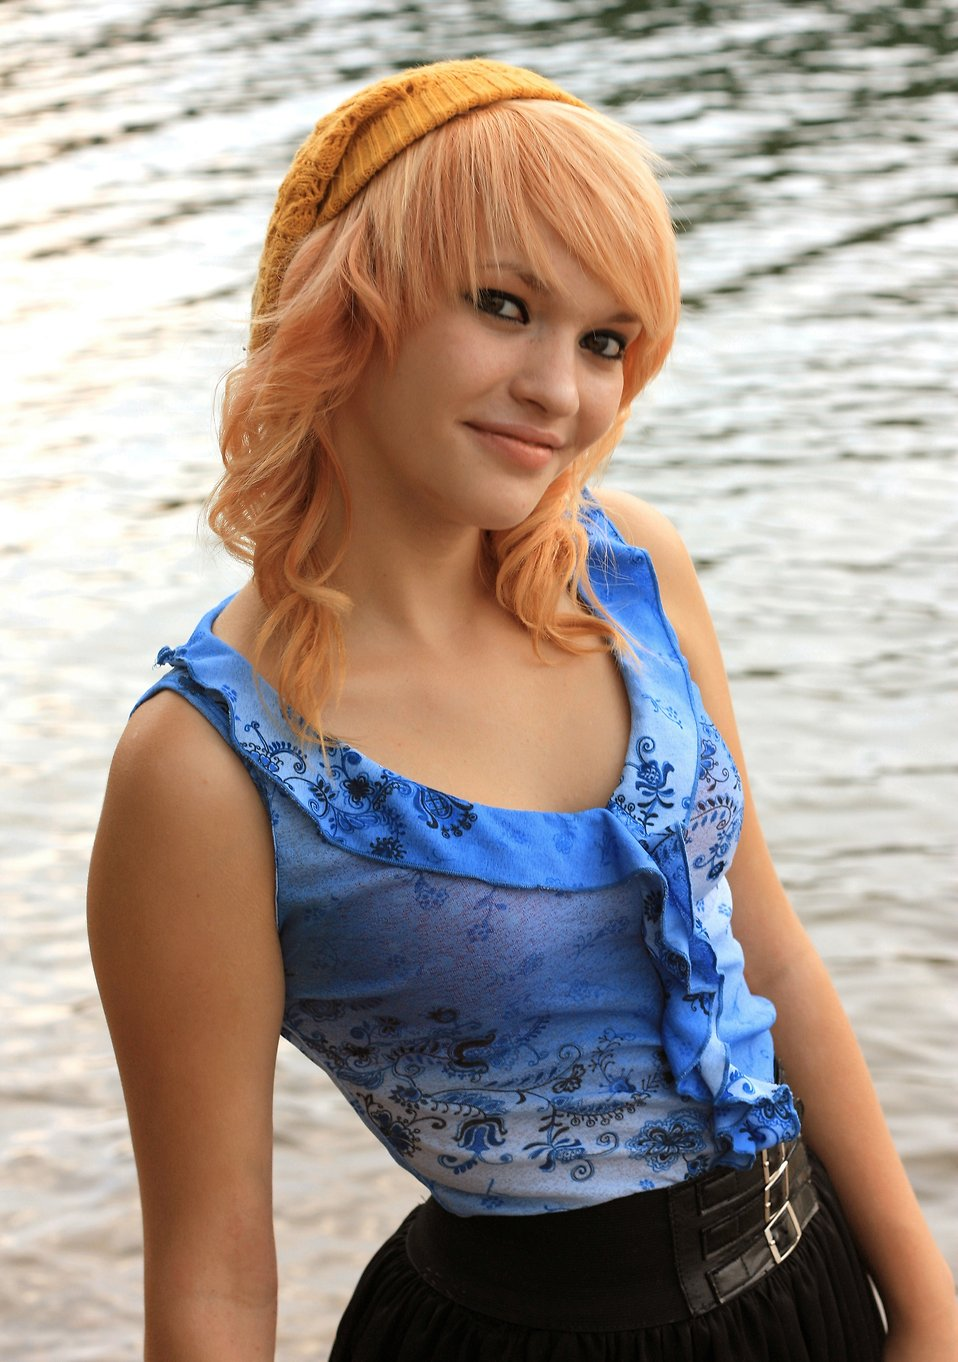 A beautiful young woman posing by a lake.